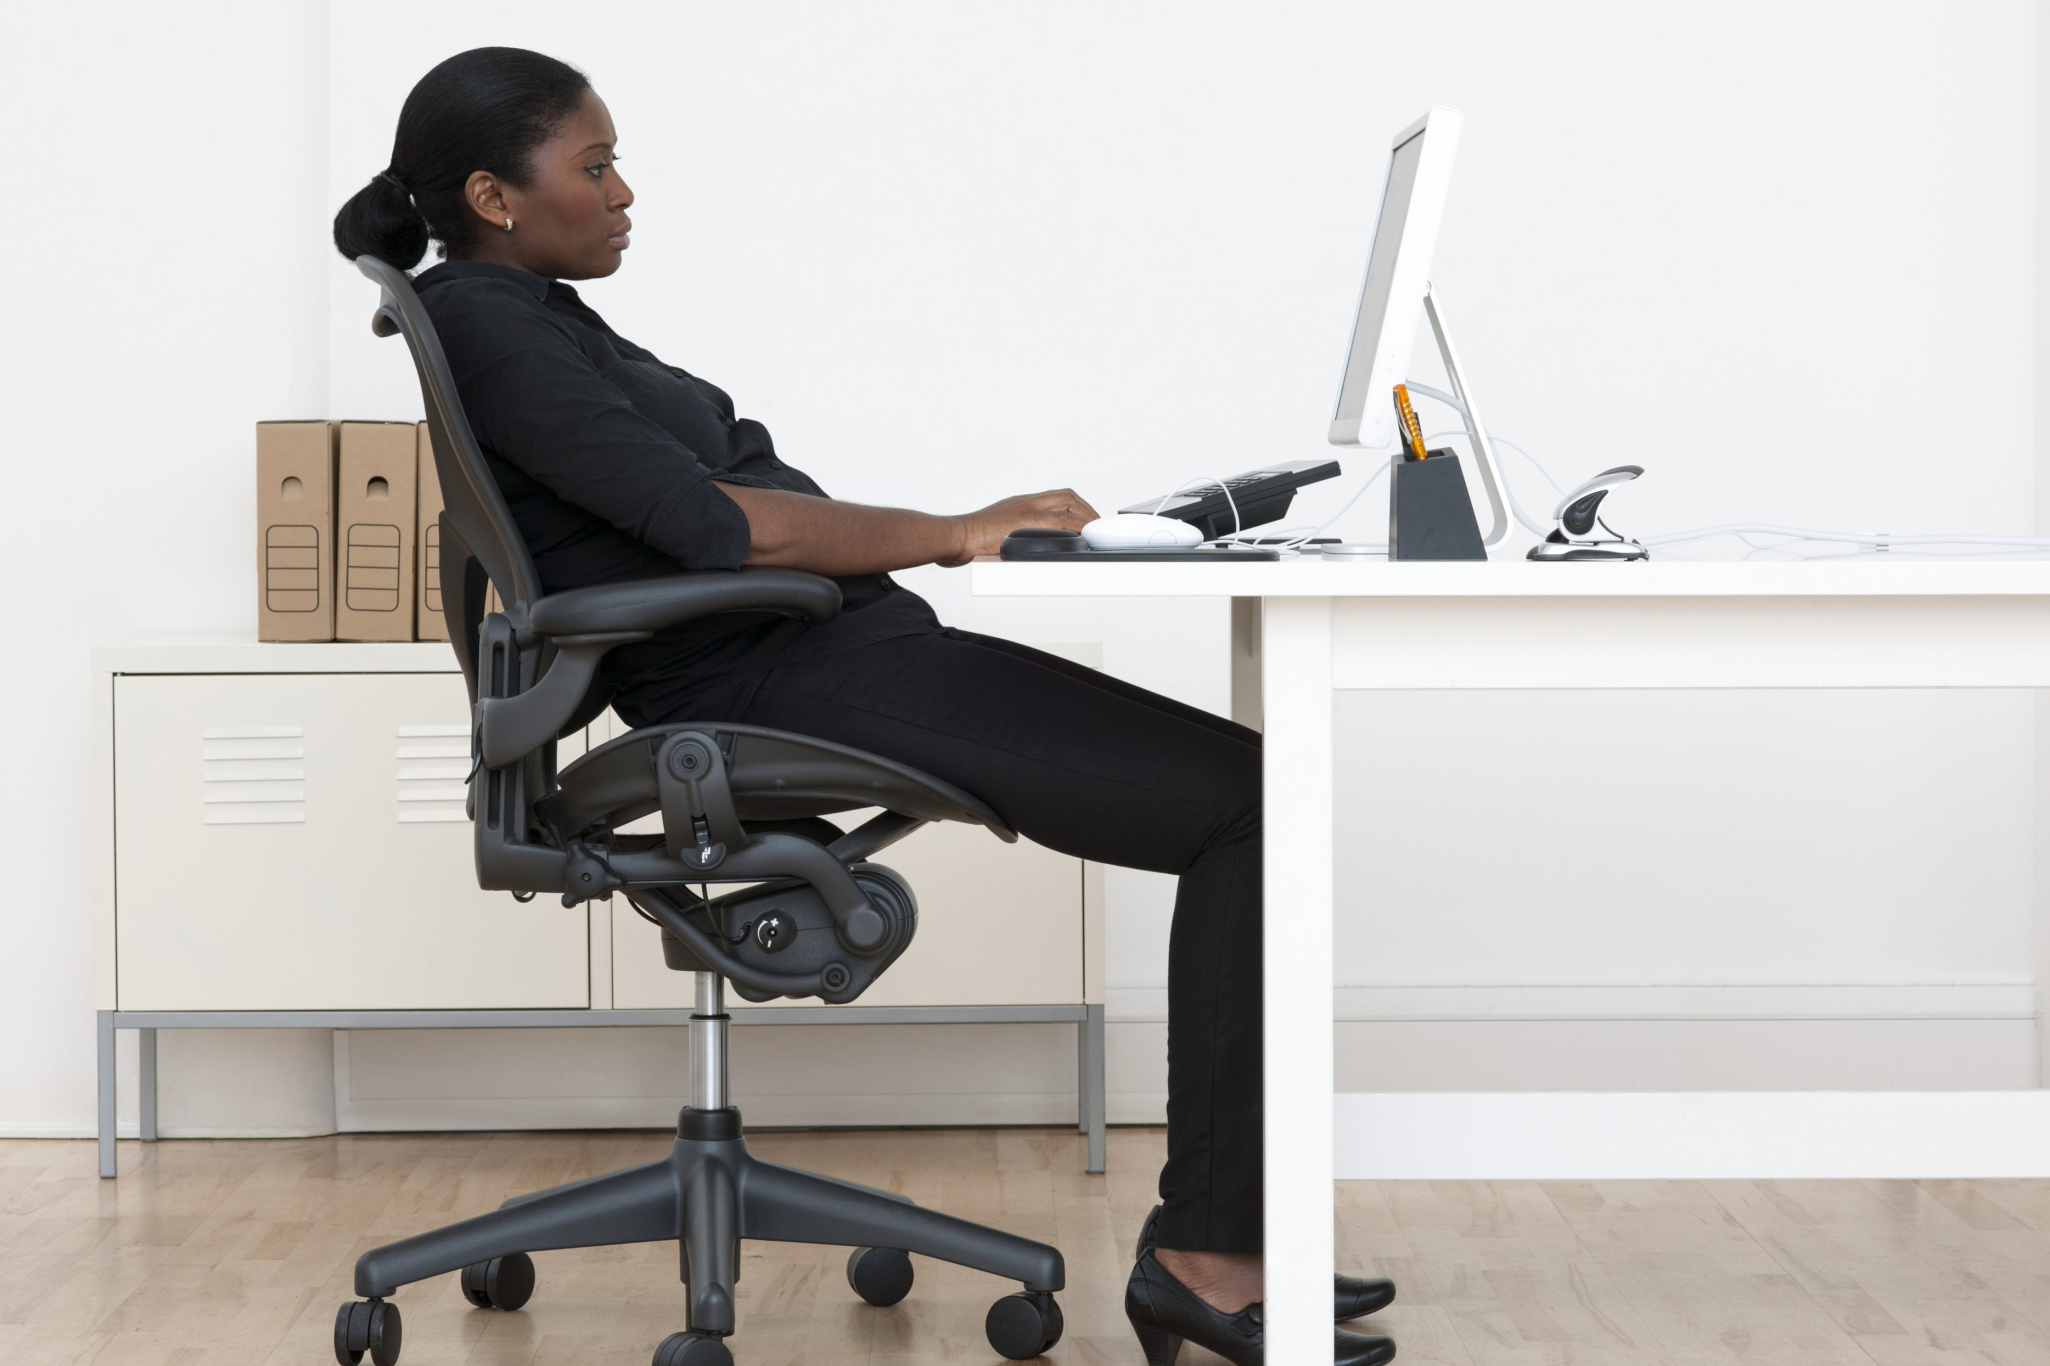 Good Posture Office Chair 7 Ways To Improve Your Posture Wellness Us News